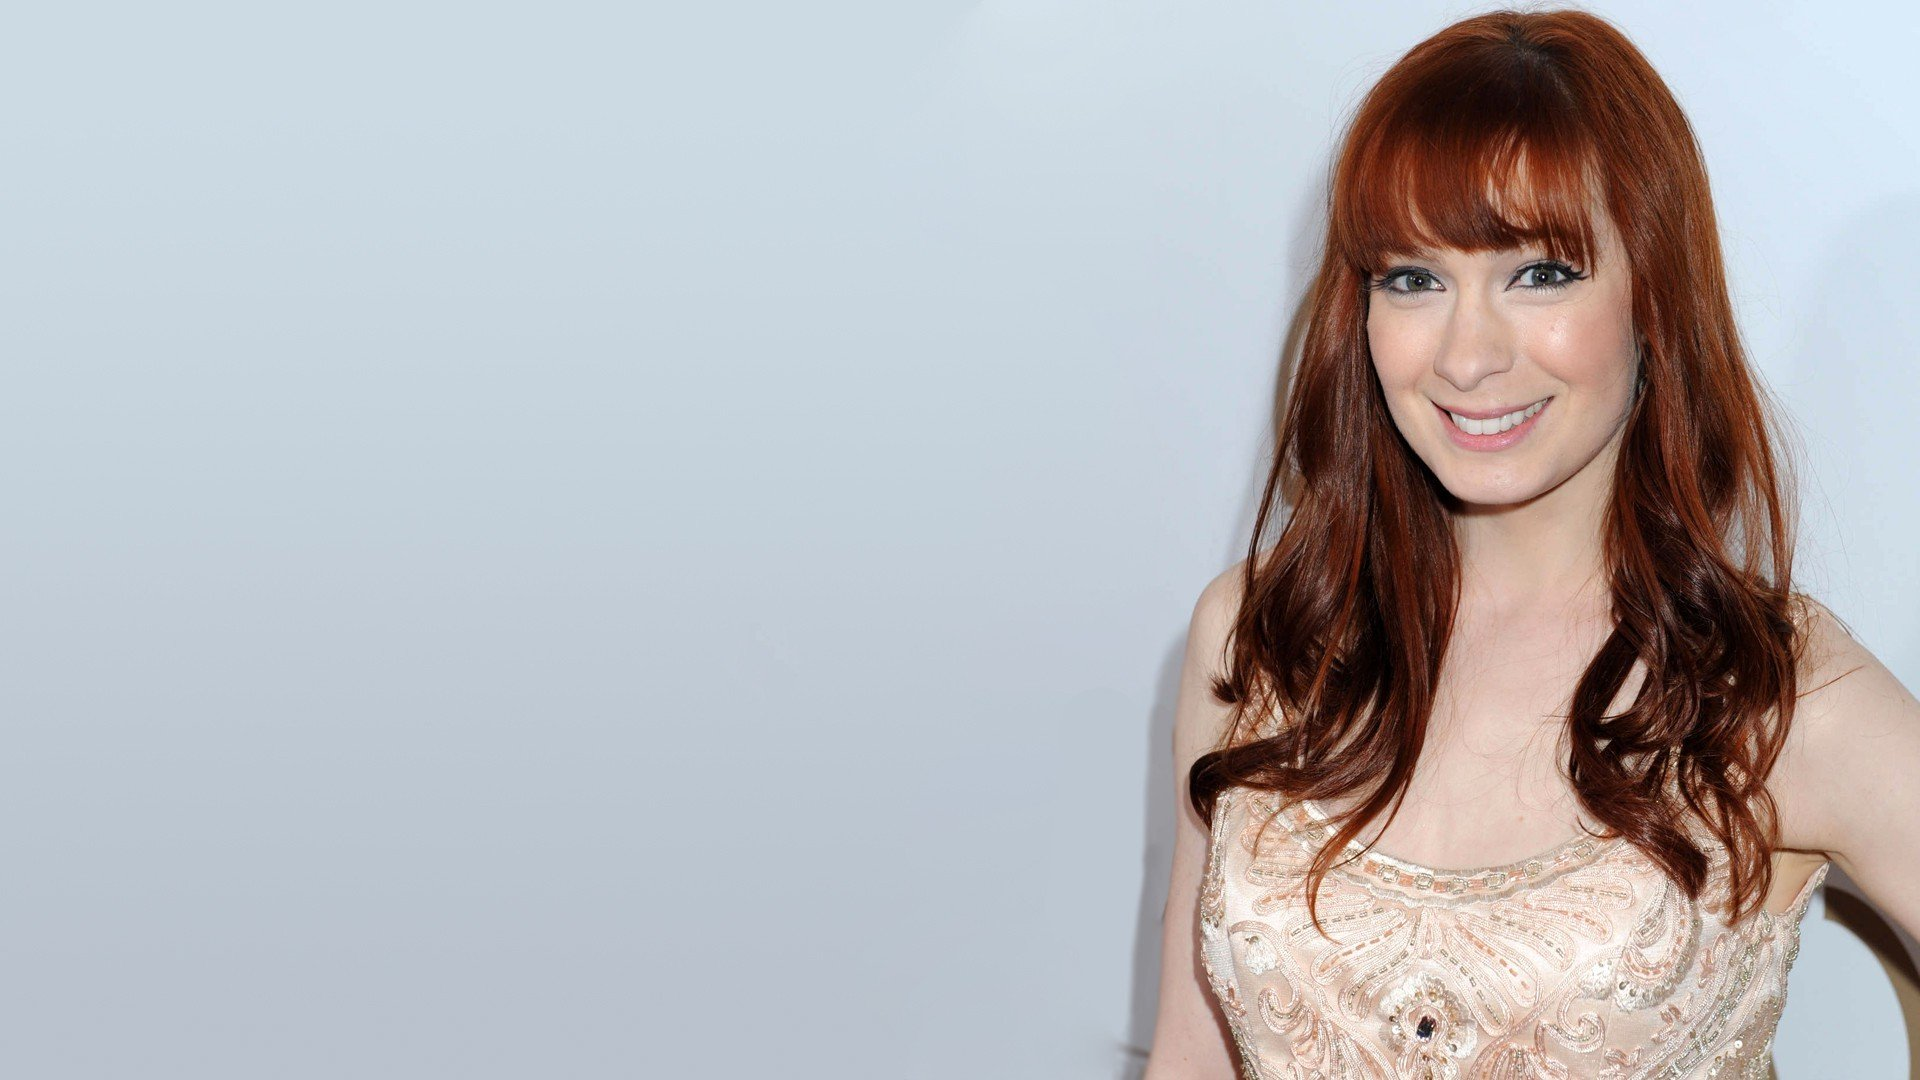 1920x1080 - Felicia Day Wallpapers 21